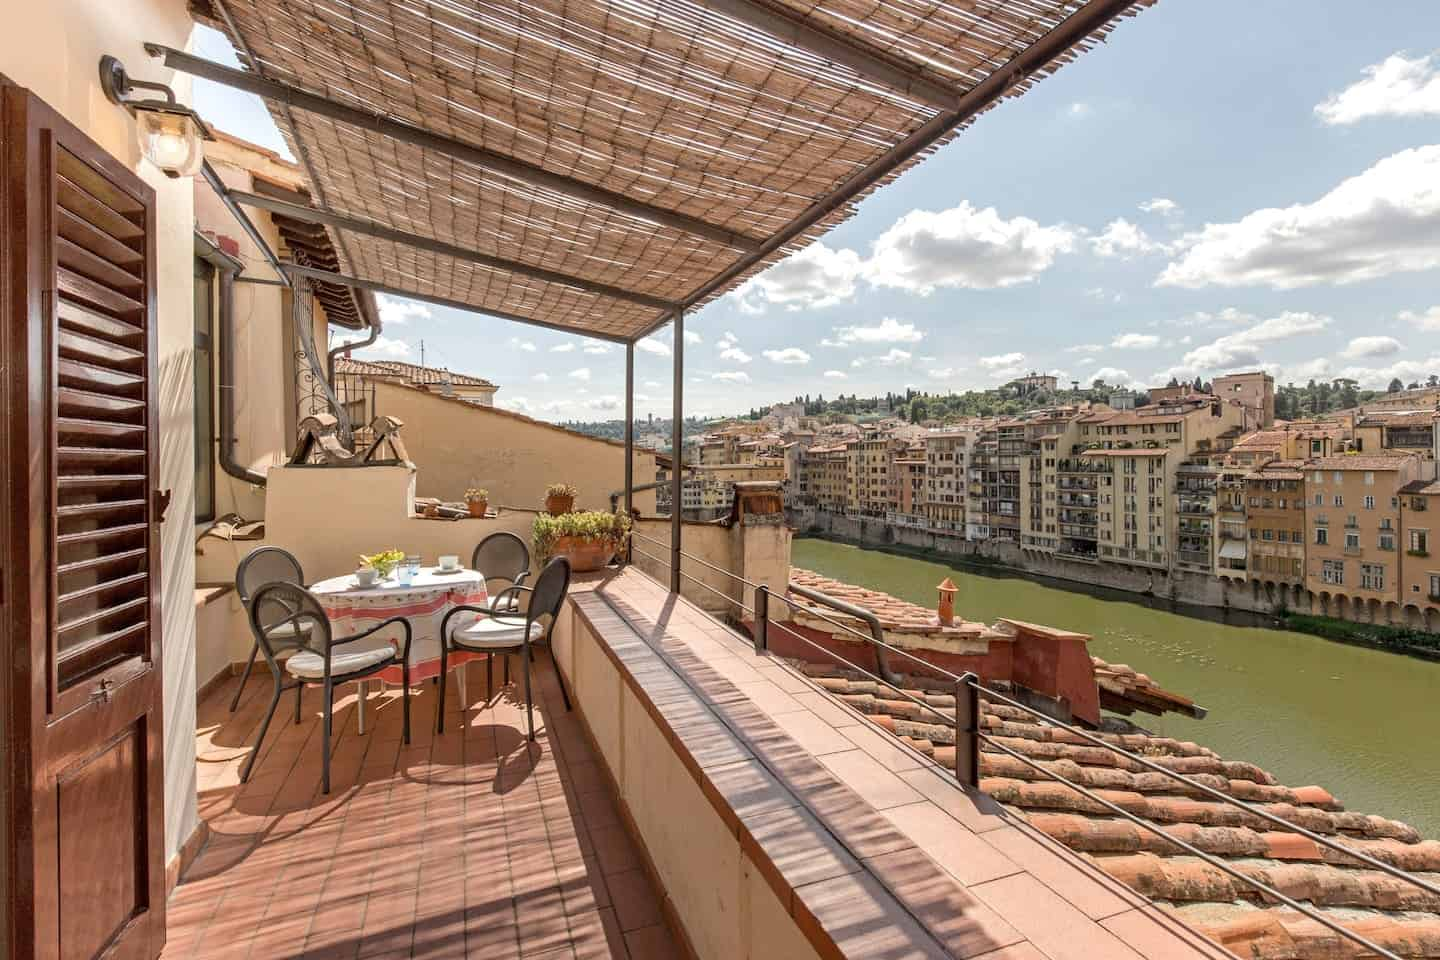 Image of Airbnb rental in Florence, Italy